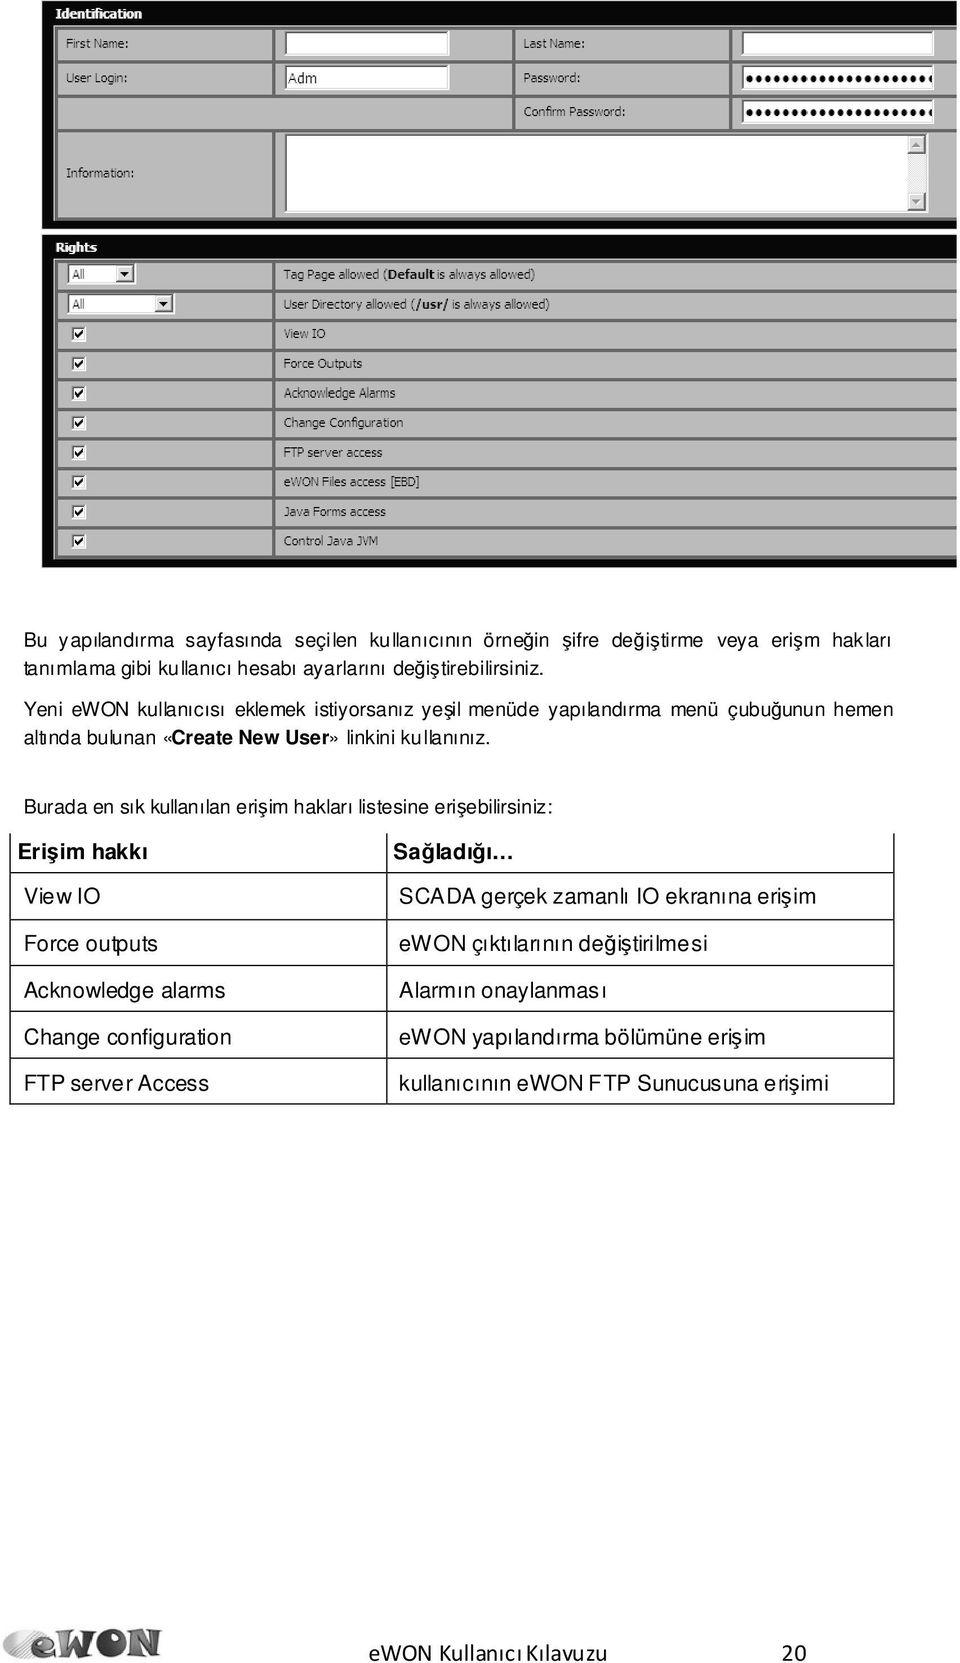 Burada en sık kullanılan erişim hakları listesine erişebilirsiniz: Erişim hakkı View IO Force outputs Acknowledge alarms Change configuration FTP server Access